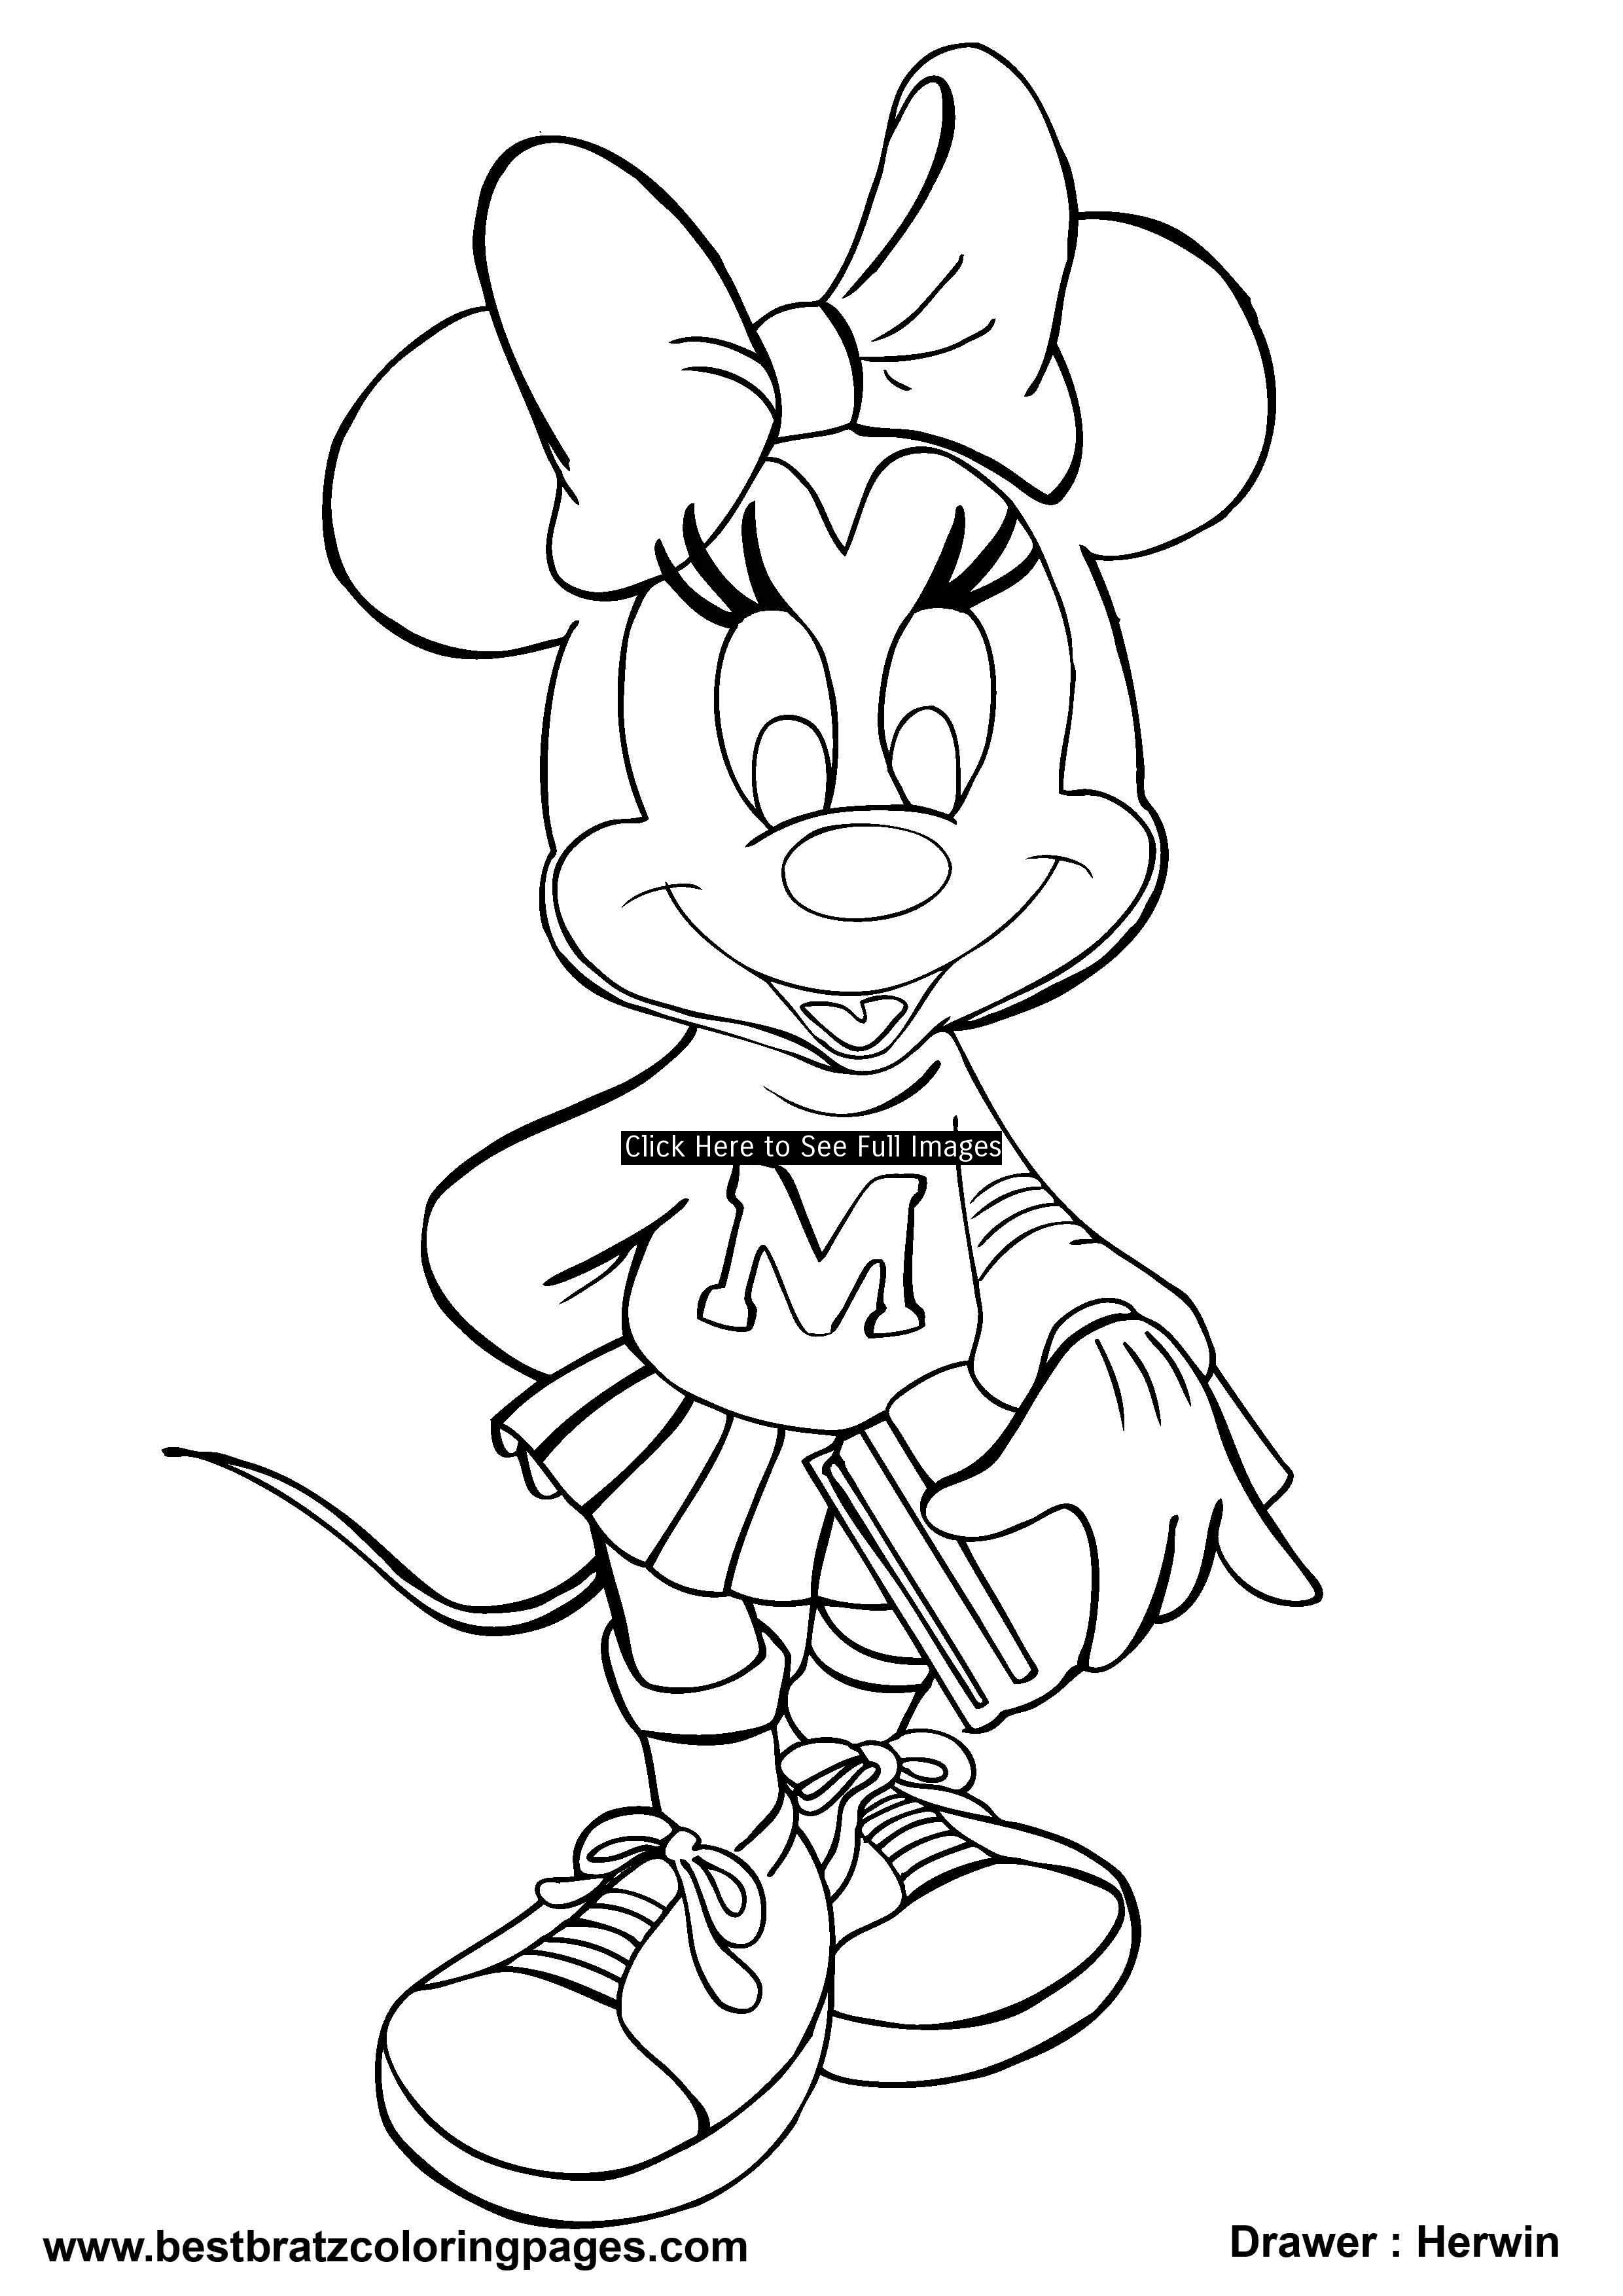 Bratz Halloween Coloring Pages Free Large Images Disney Coloring Pages Minnie Mouse Coloring Pages Mickey Mouse Coloring Pages